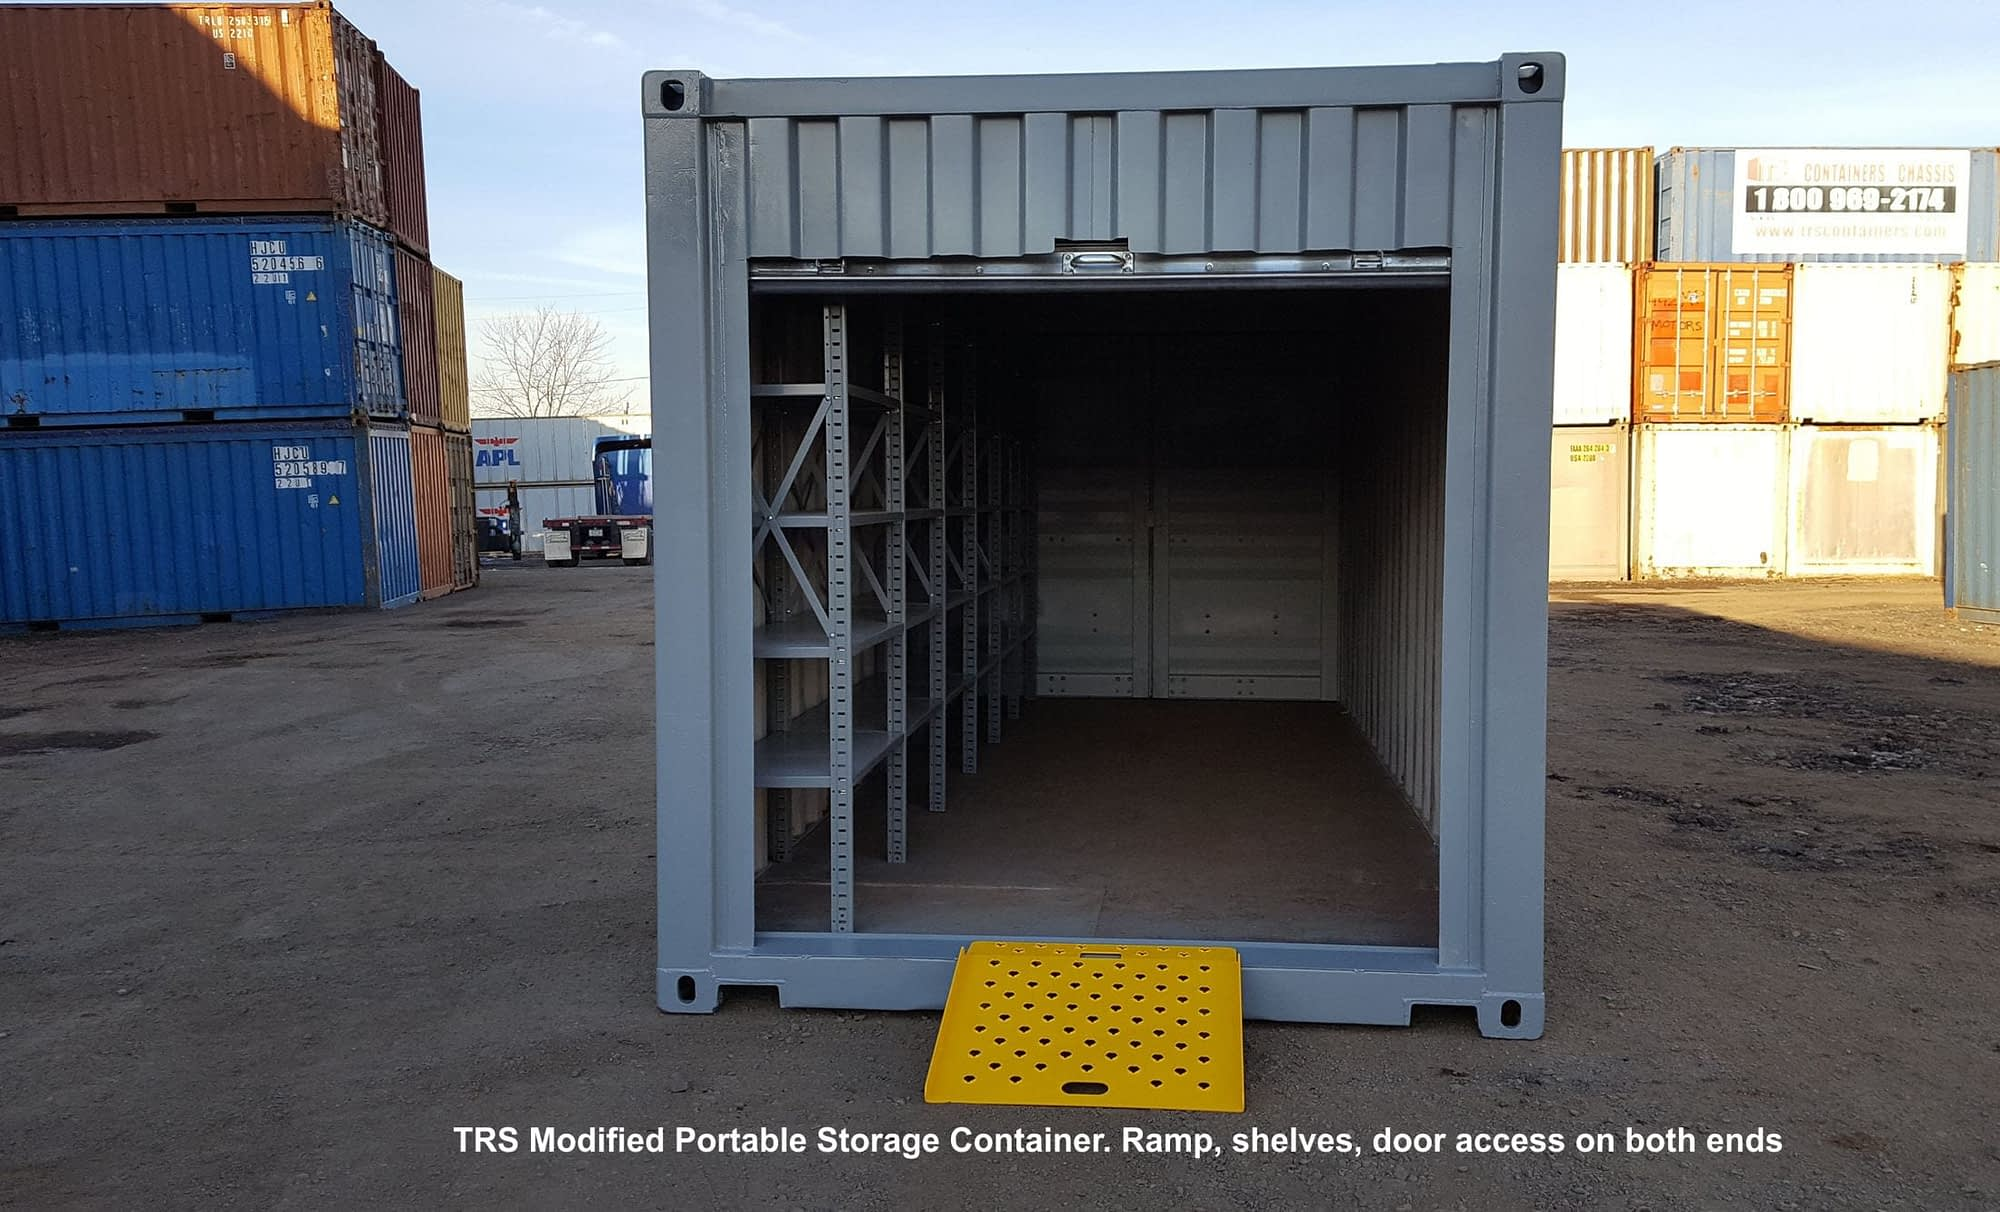 TRS easy access storage unit with shelves.